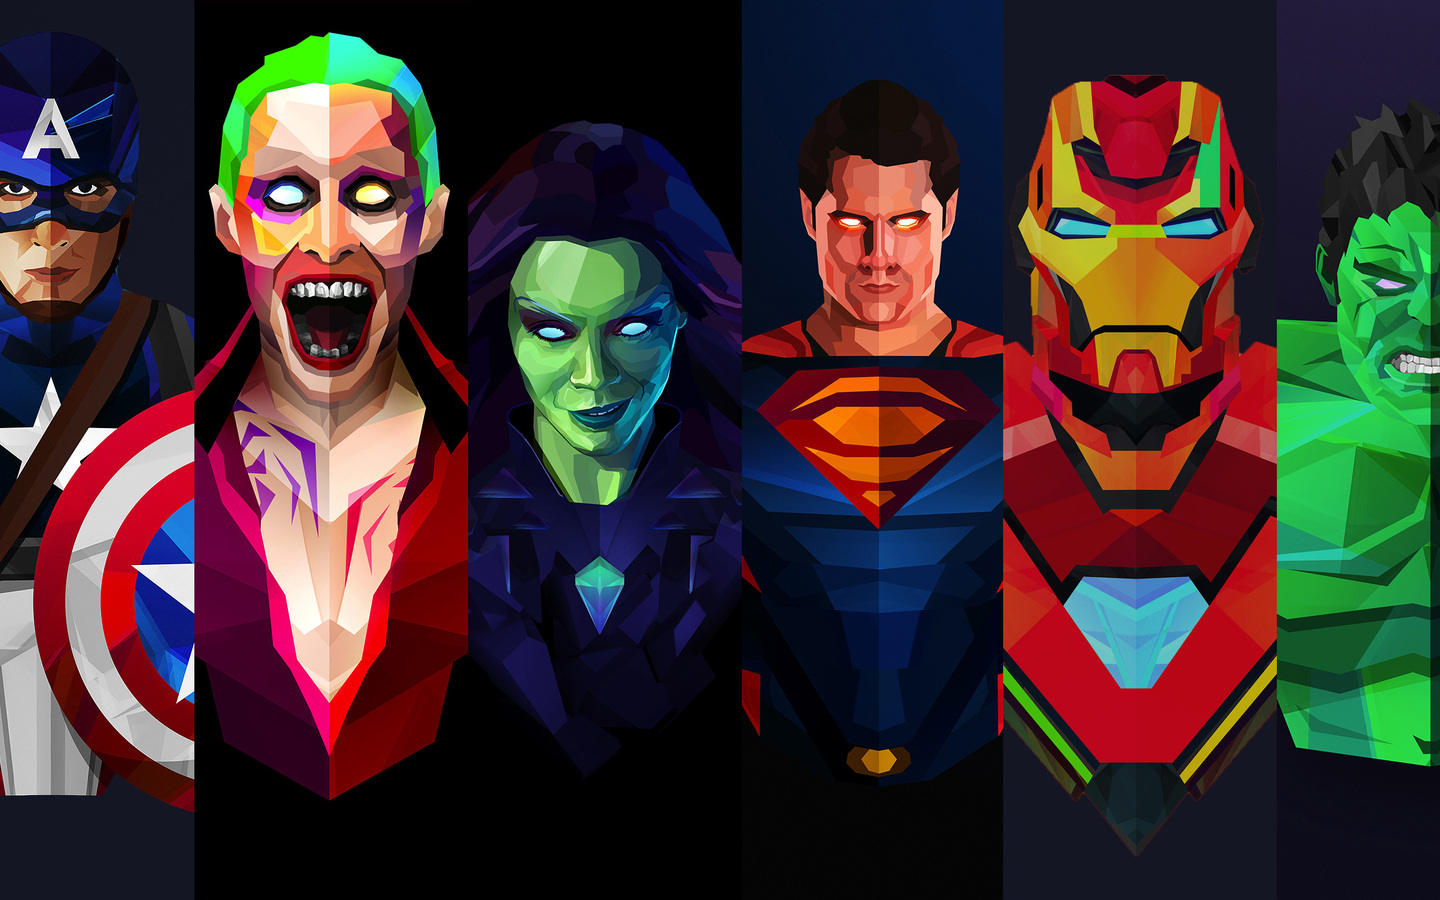 1440x900 marvel and dc artwork 1440x900 resolution hd 4k wallpapers images backgrounds photos - Marvel and dc wallpapers ...